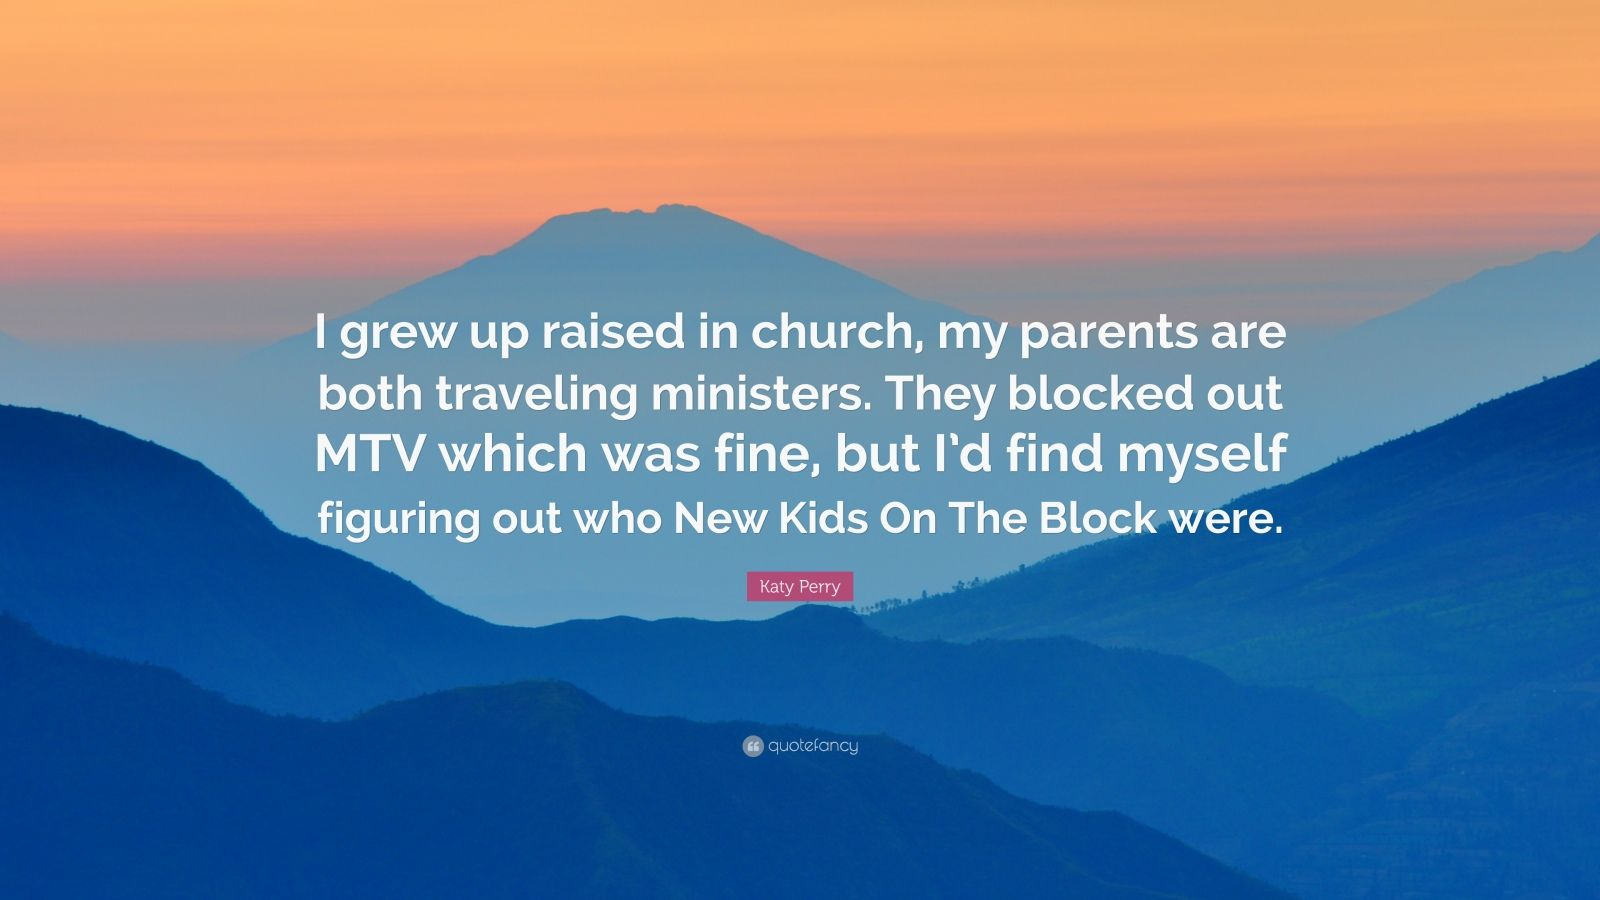 "Katy Perry Quote: ""I grew up raised in church, my parents are both traveling ministers. They blocked out MTV which was fine, but I'd find myself figuring out who New Kids On The Block were."""